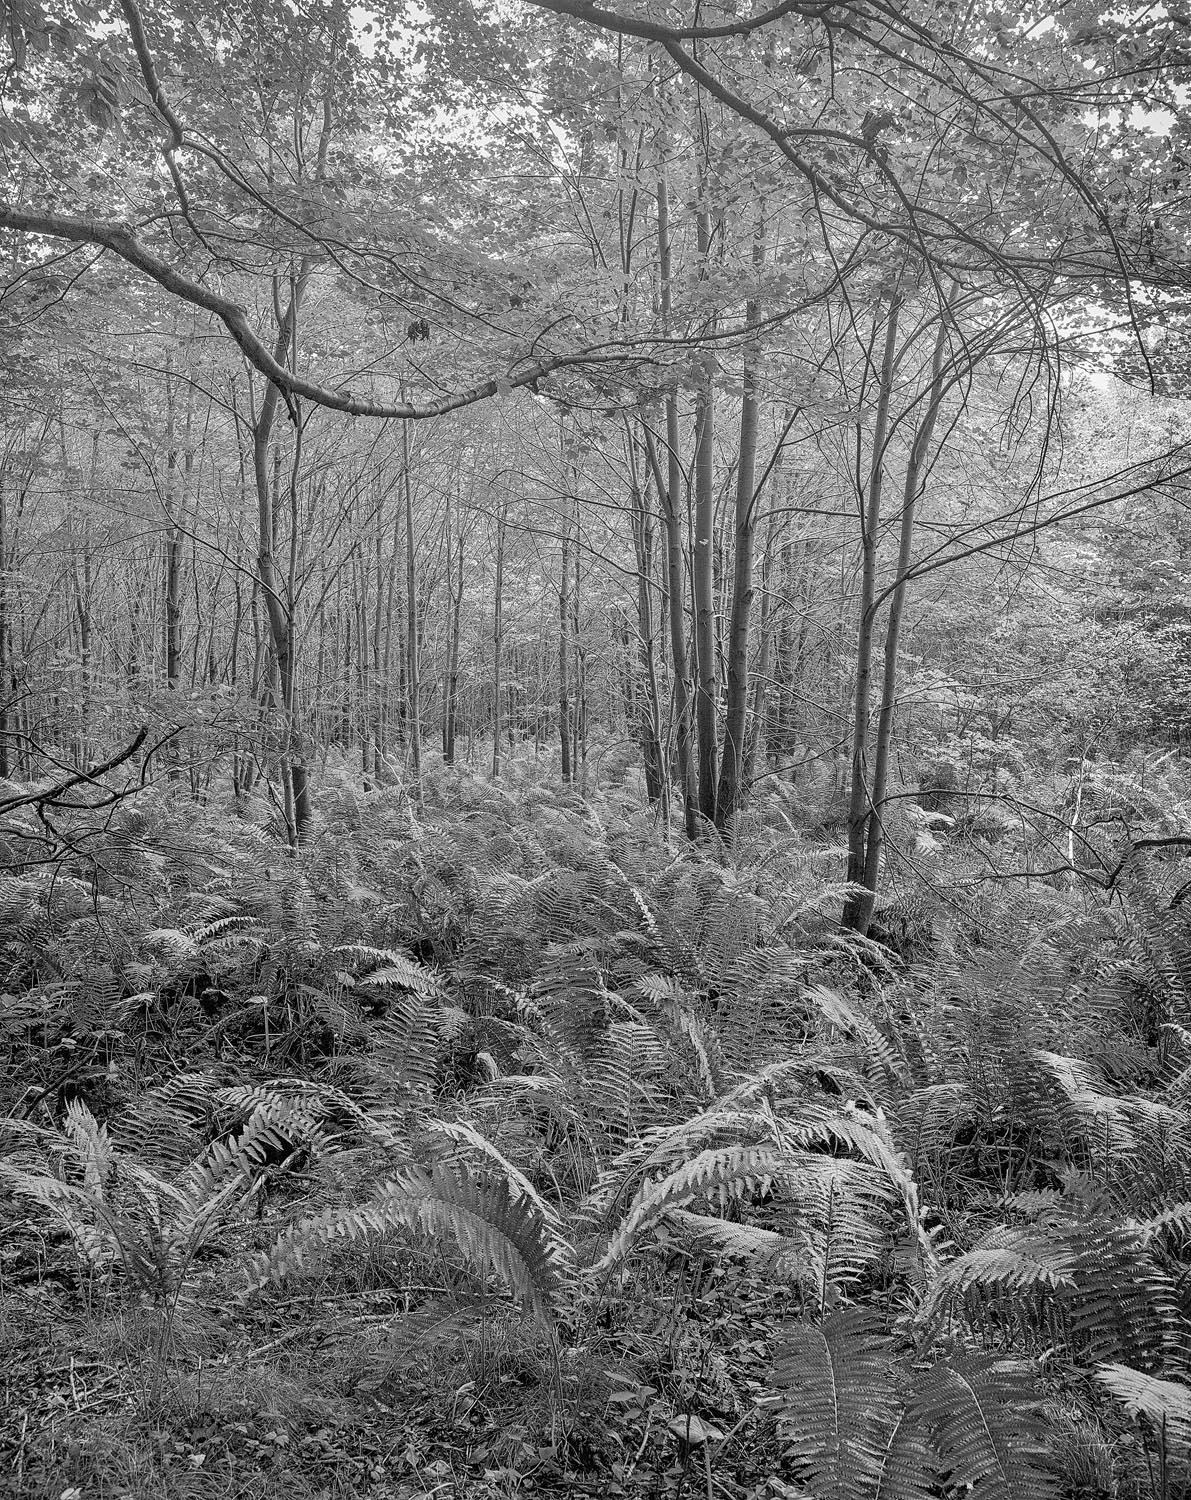 Trees and Ferns